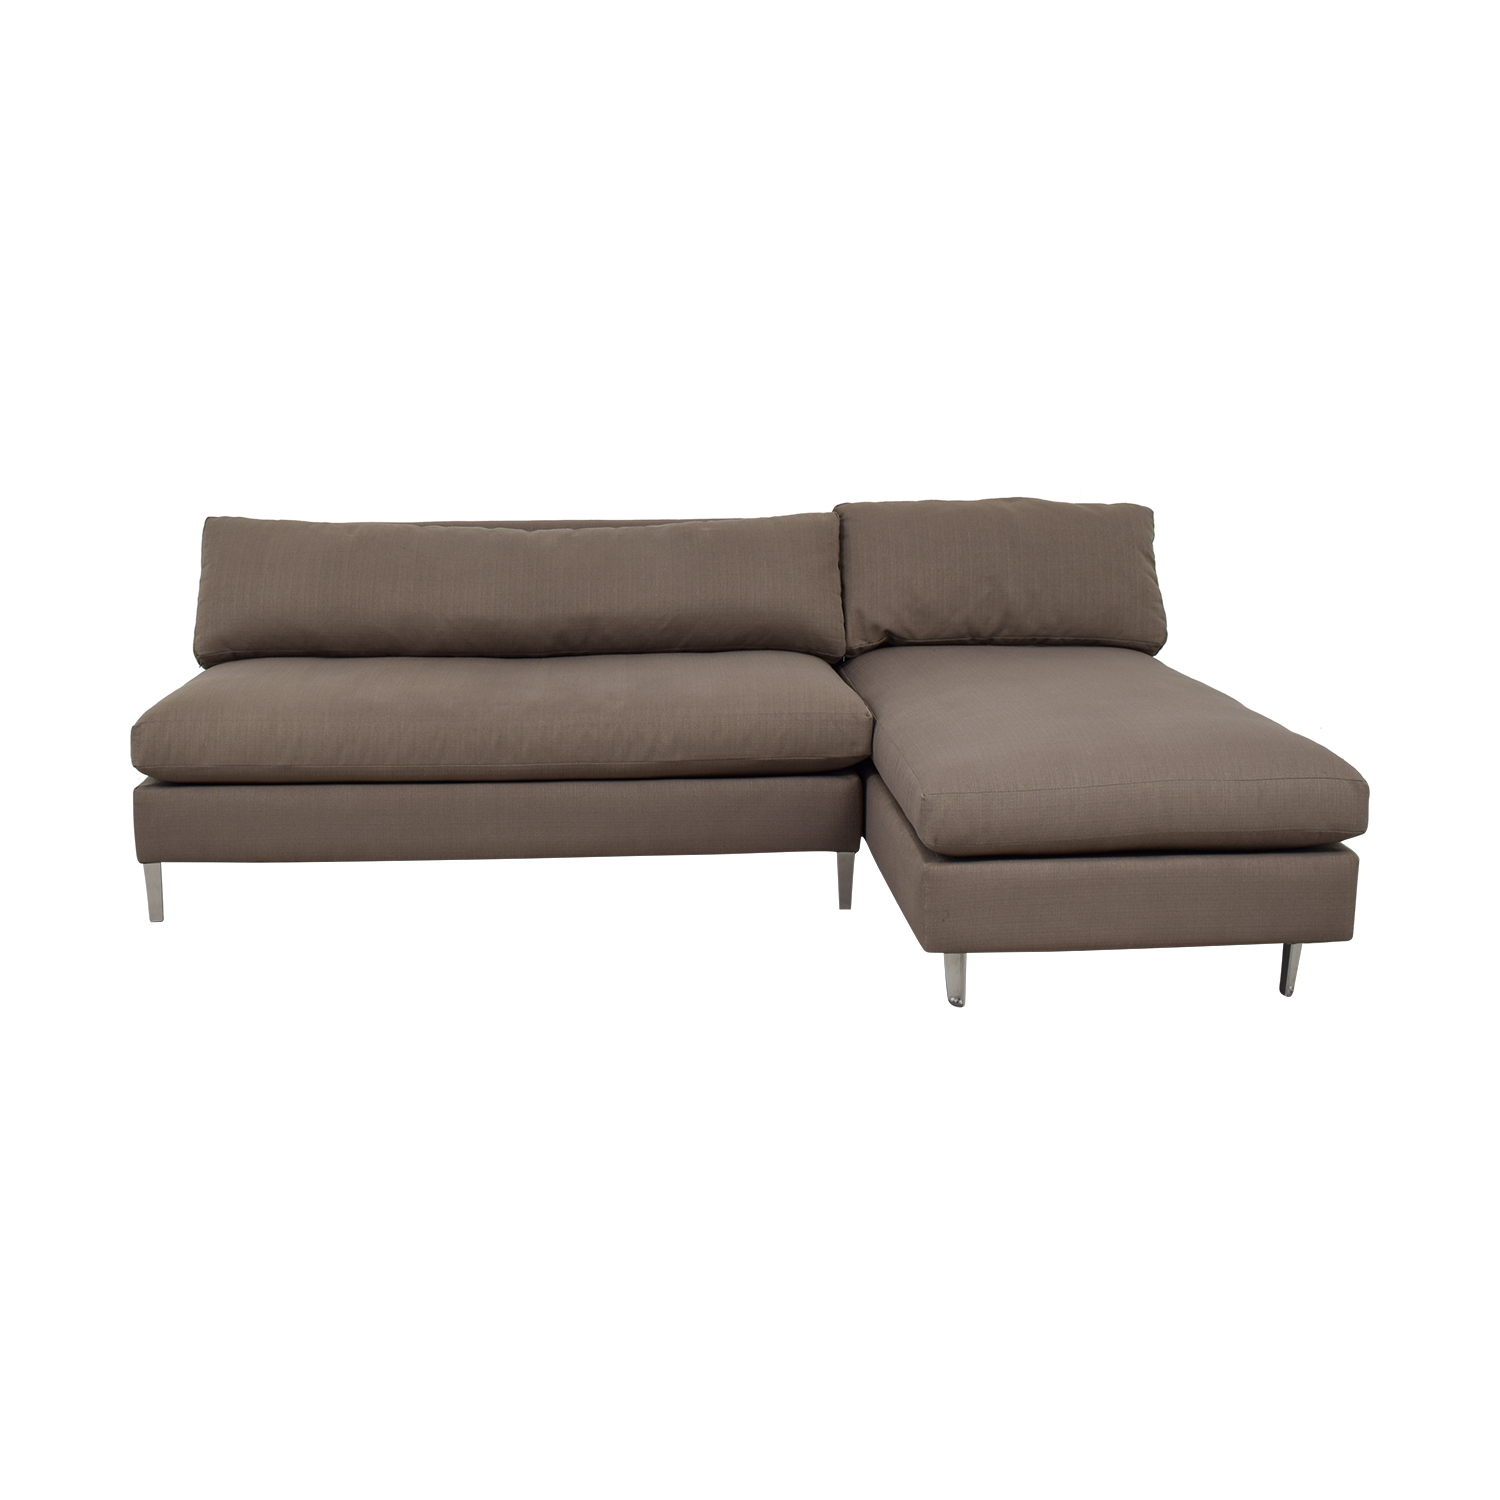 Shop CB2 Grey No Arms Chaise Sectional CB2 Sofas ...